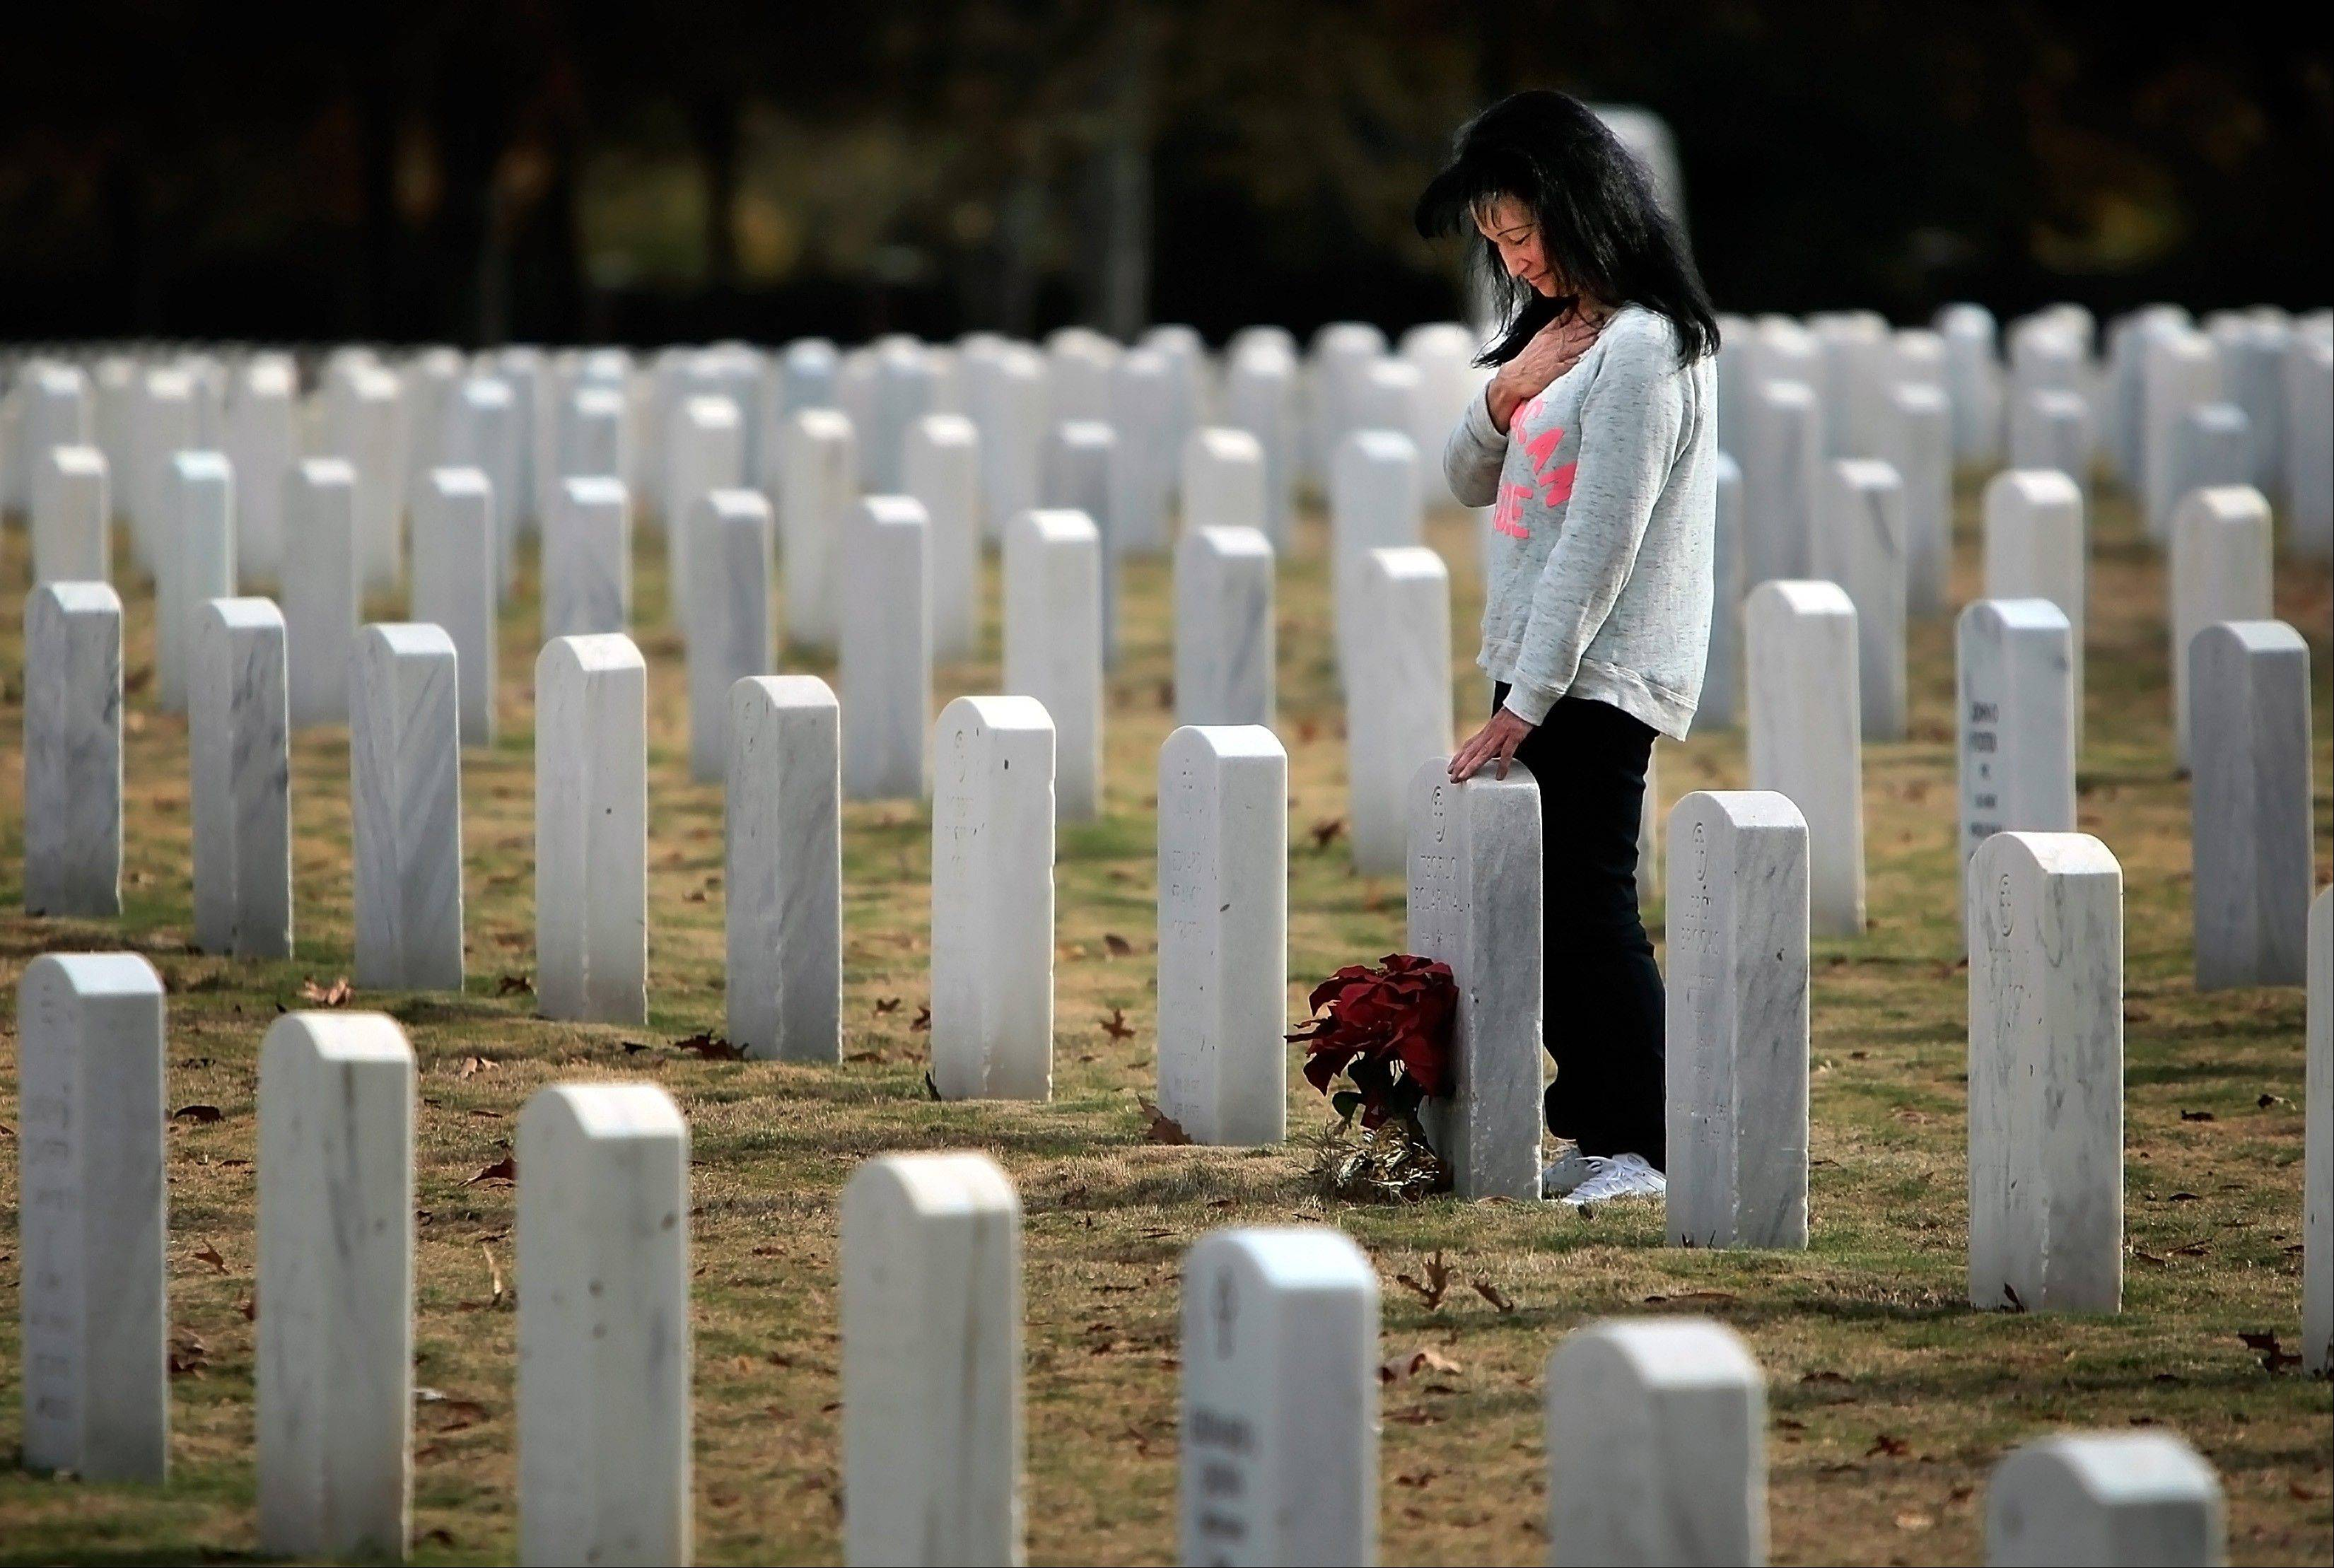 As a band nearby plays the National Anthem, Priscilla Eclarinal pays her respects to her father�s grave at the annual Veterans Day ceremony at Memphis National Cemetery in Memphis, Tenn., Sunday. Her father, Chief Petty Officer Teofilo Eclarinal, served for 30 years in the U.S. Navy fighting in both World War II and Korea.